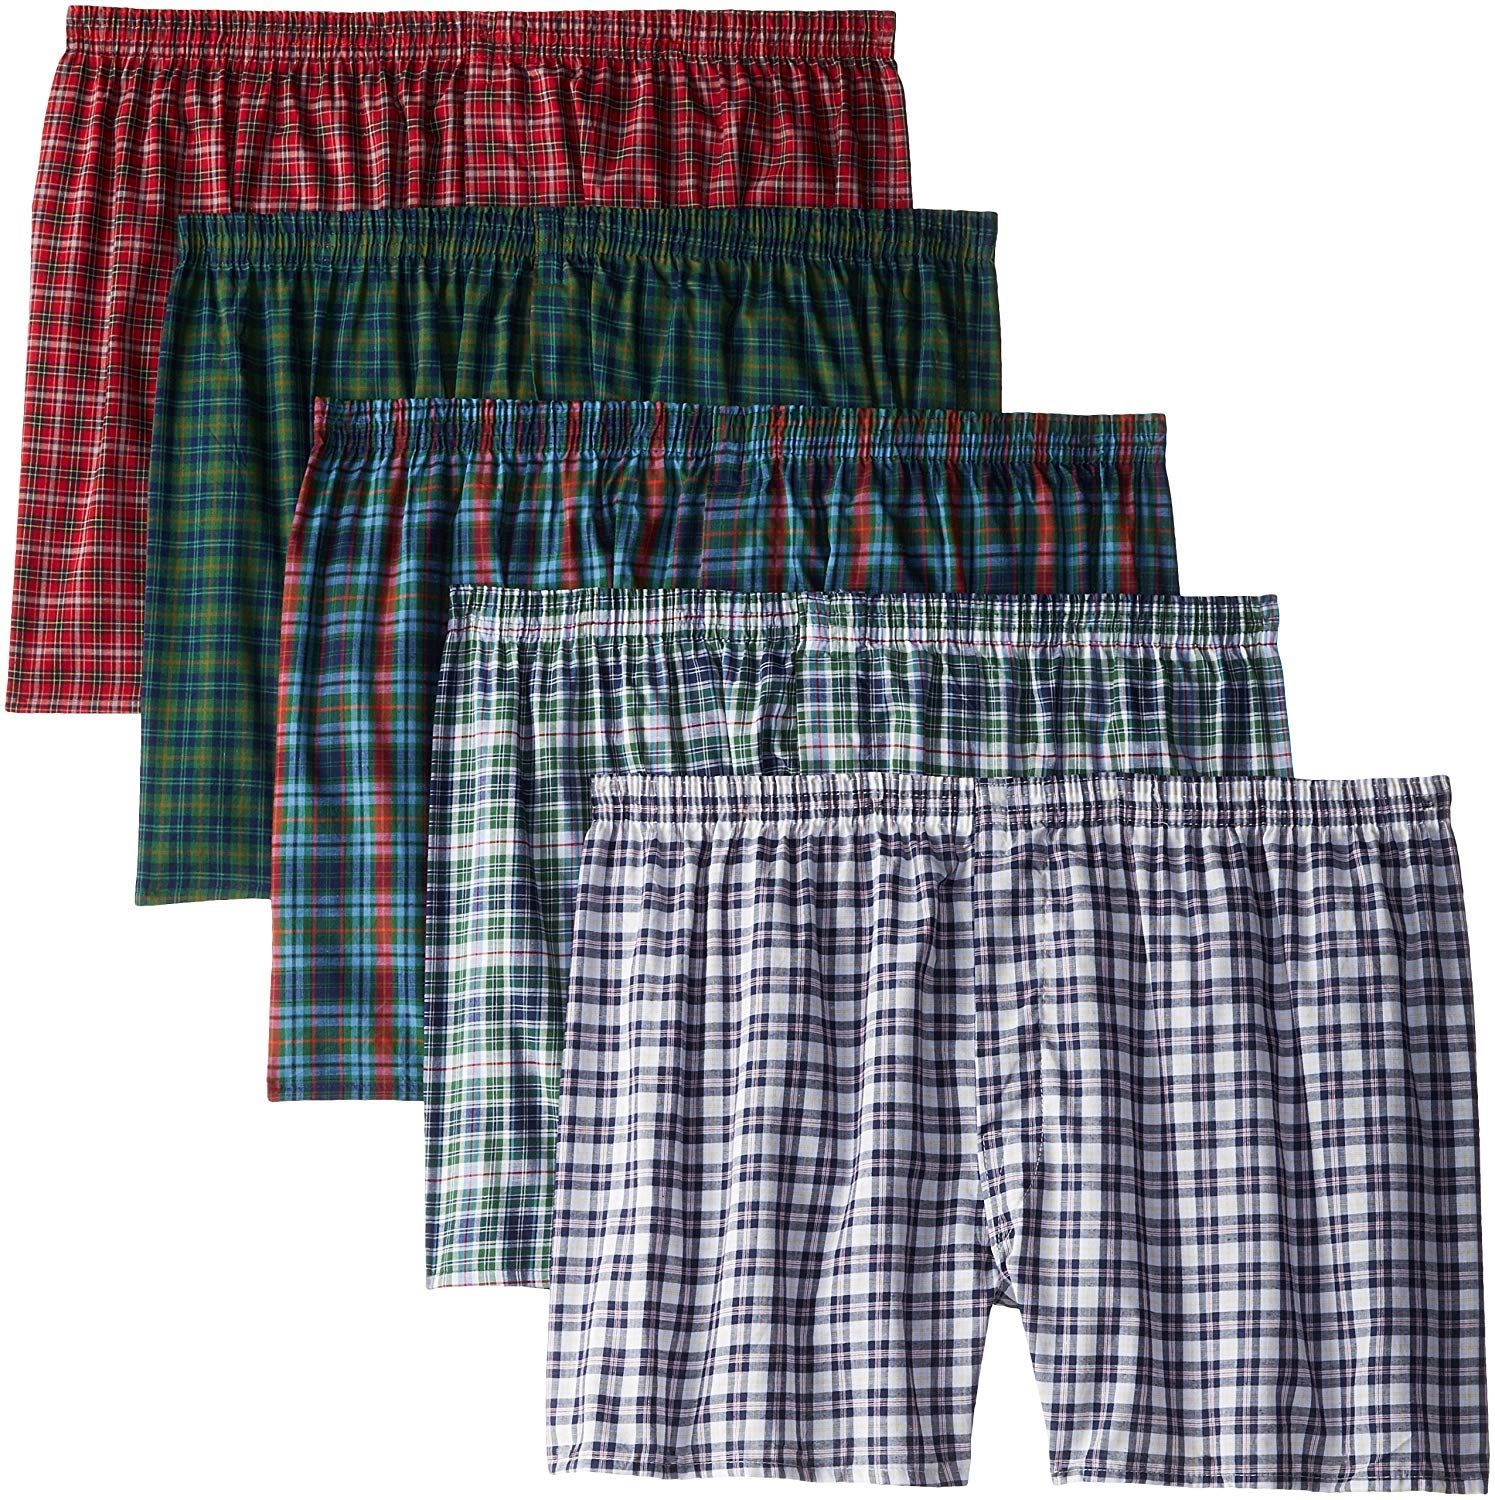 Fruit of The Loom Men's Woven Tartan and Plaid Boxer Multipack (3XB (50-52), Assorted Tartan - 5 Pack) by Fruit of the Loom (Image #1)